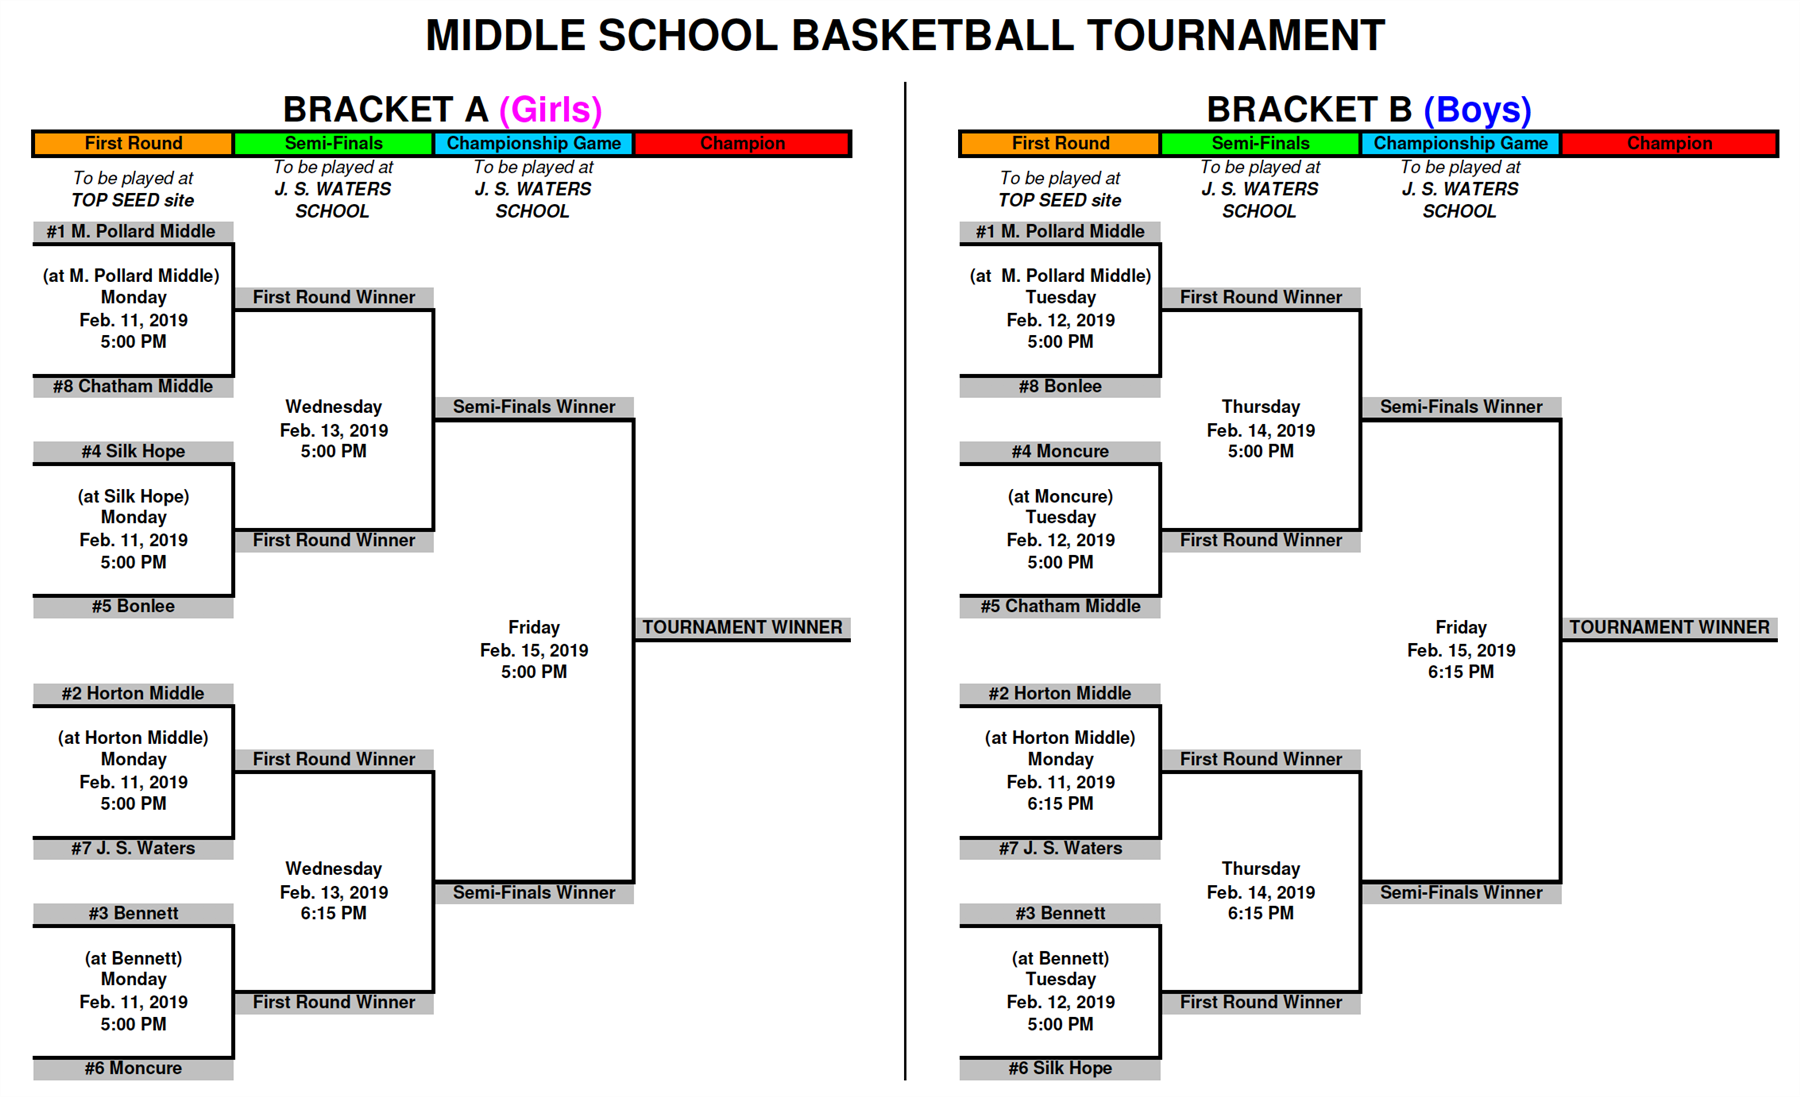 2019 middle school basketball bracket